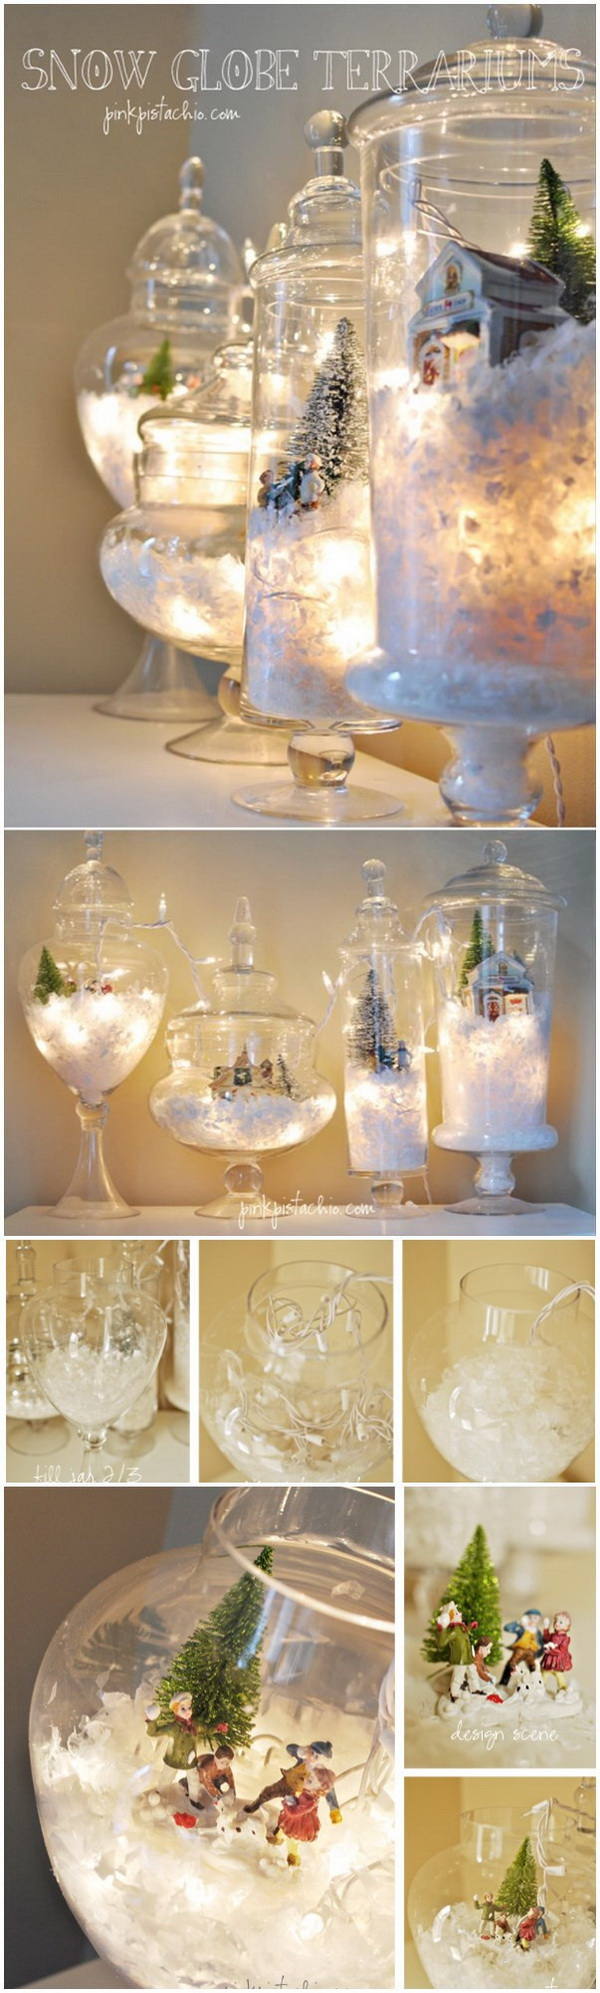 Let It Snow Globe Terrariums. These Let it Snow globe terrariums are simply beautiful and gorgeous and will be a great addition to your Christmas mantel. They are also simple and easy to make with some fake snow, Christmas lights, and holiday scenery you have a winner!